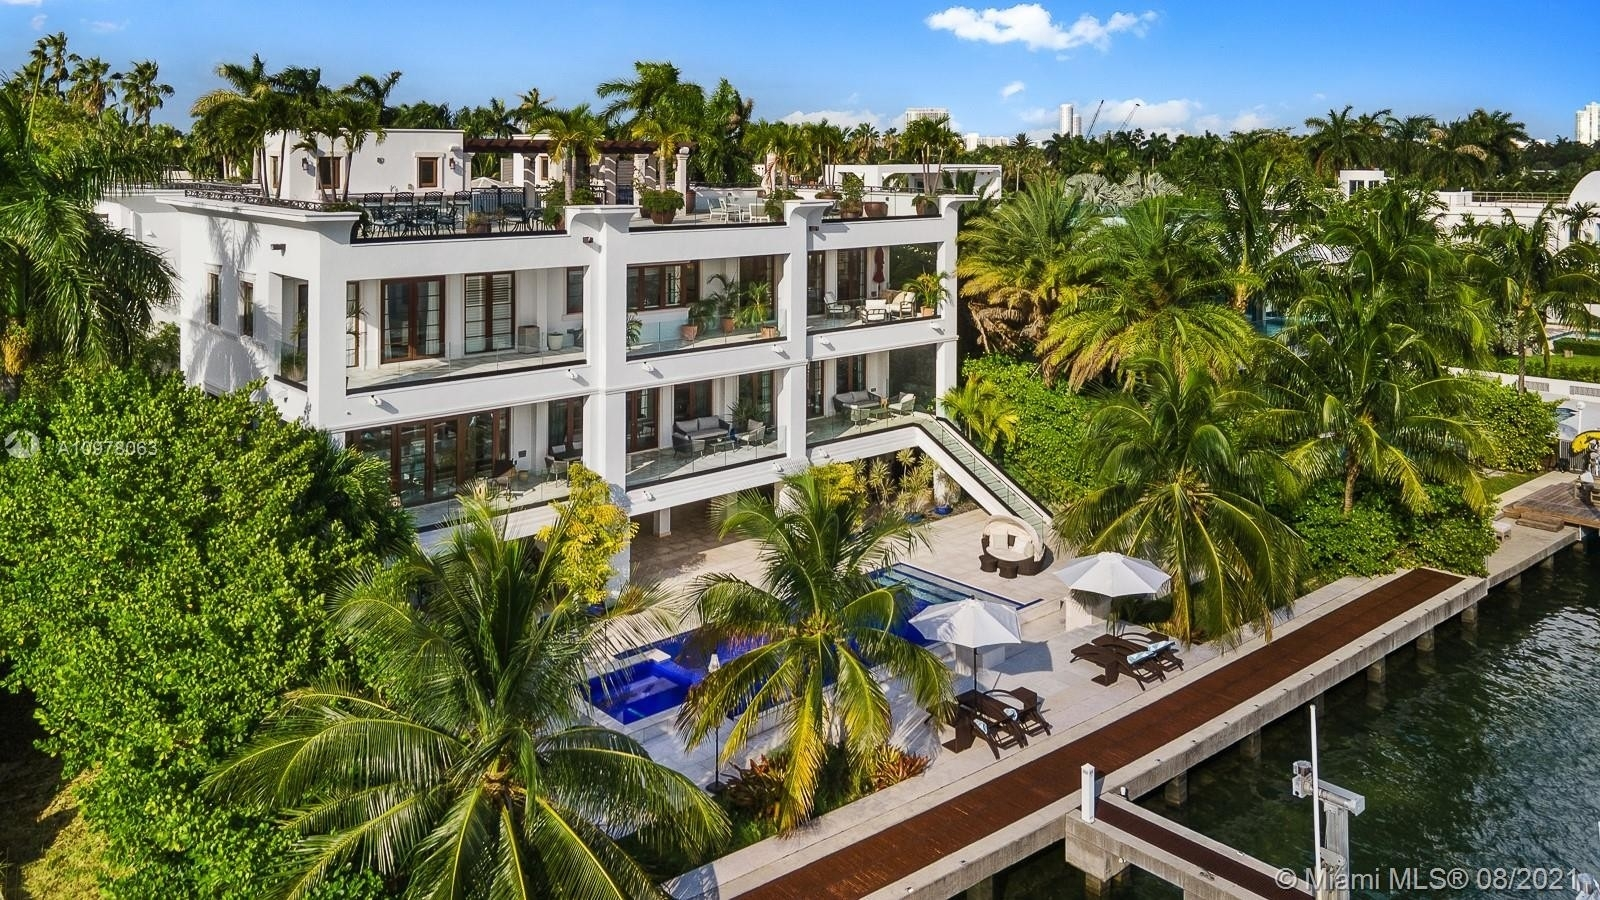 Single Family Home for Sale at Palm Island, Miami Beach, FL 33139